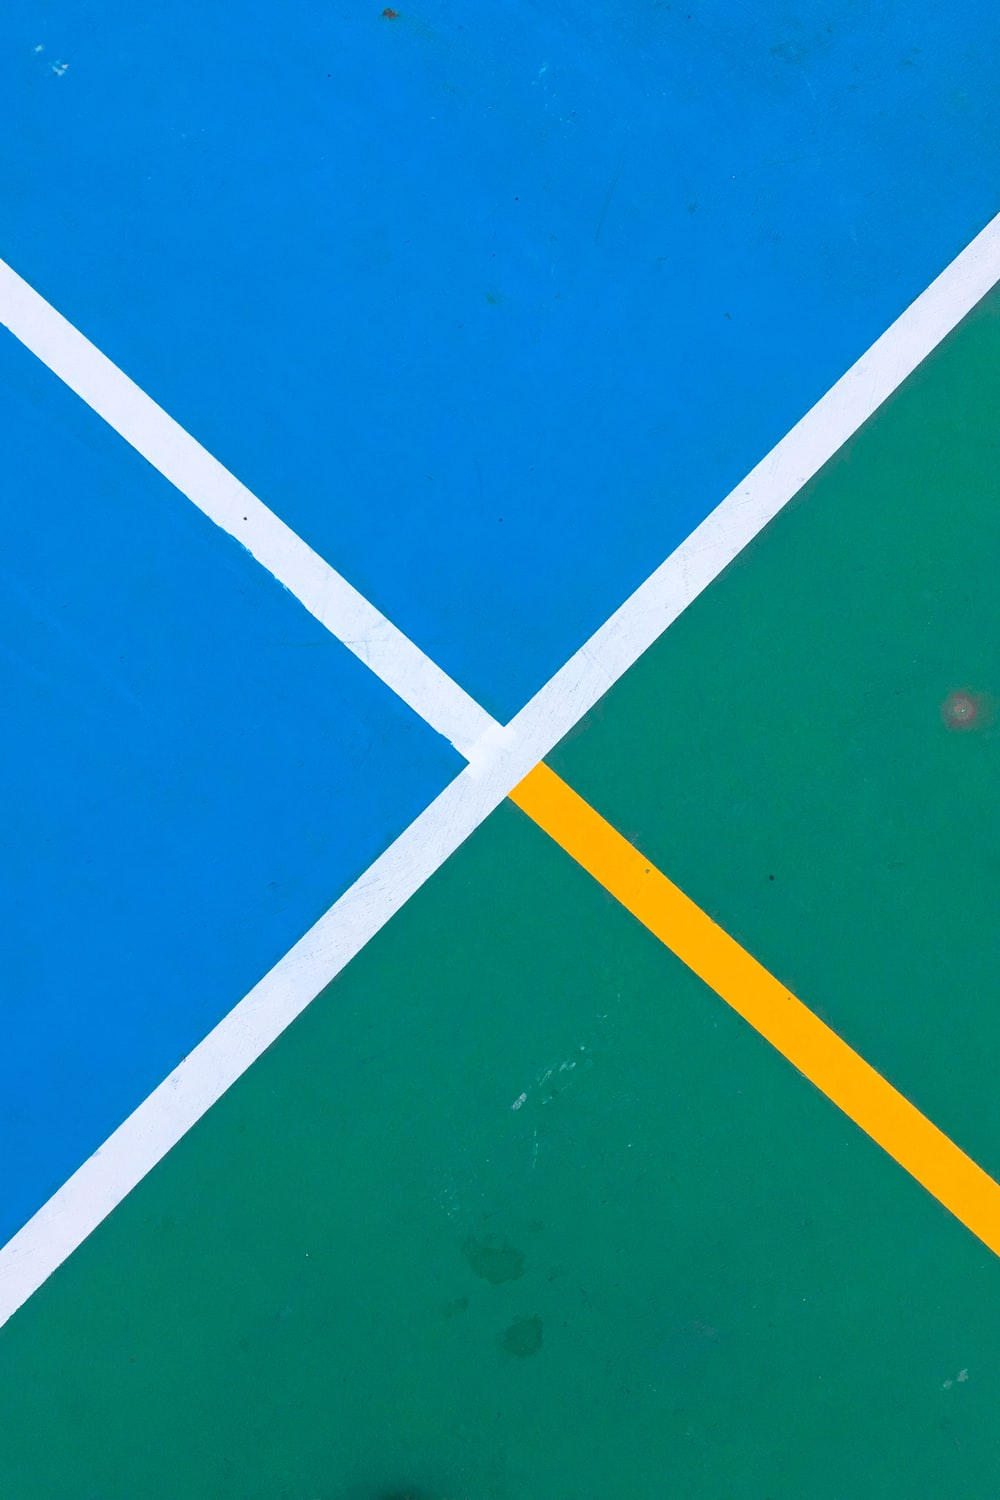 photo of blue and green pavement